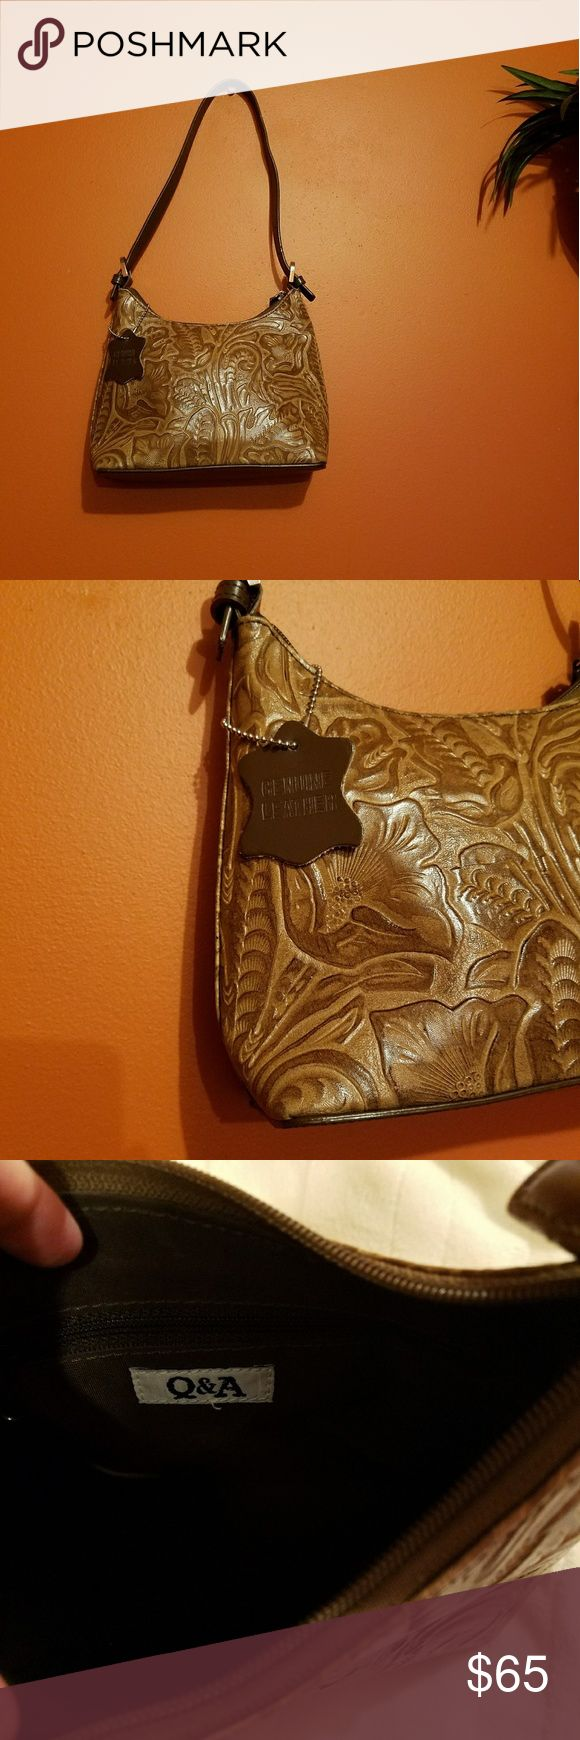 Stunning Tropical Real Leather Detail Handbag This is a reposh for my mother. She loves the design, but it's a little small for her tastes.   Features gorgeous real leather with tropical etchings. Stunning little handbag. Total length is 17 inches (with strap drop), 7.5 tall without, and 9 across. Can be slung over the shoulder as well.   Q&A brand.  Beautiful condition overall, but there is a tiny little black spot on the back (see photo) and light storage wear and scuffing on the straps…